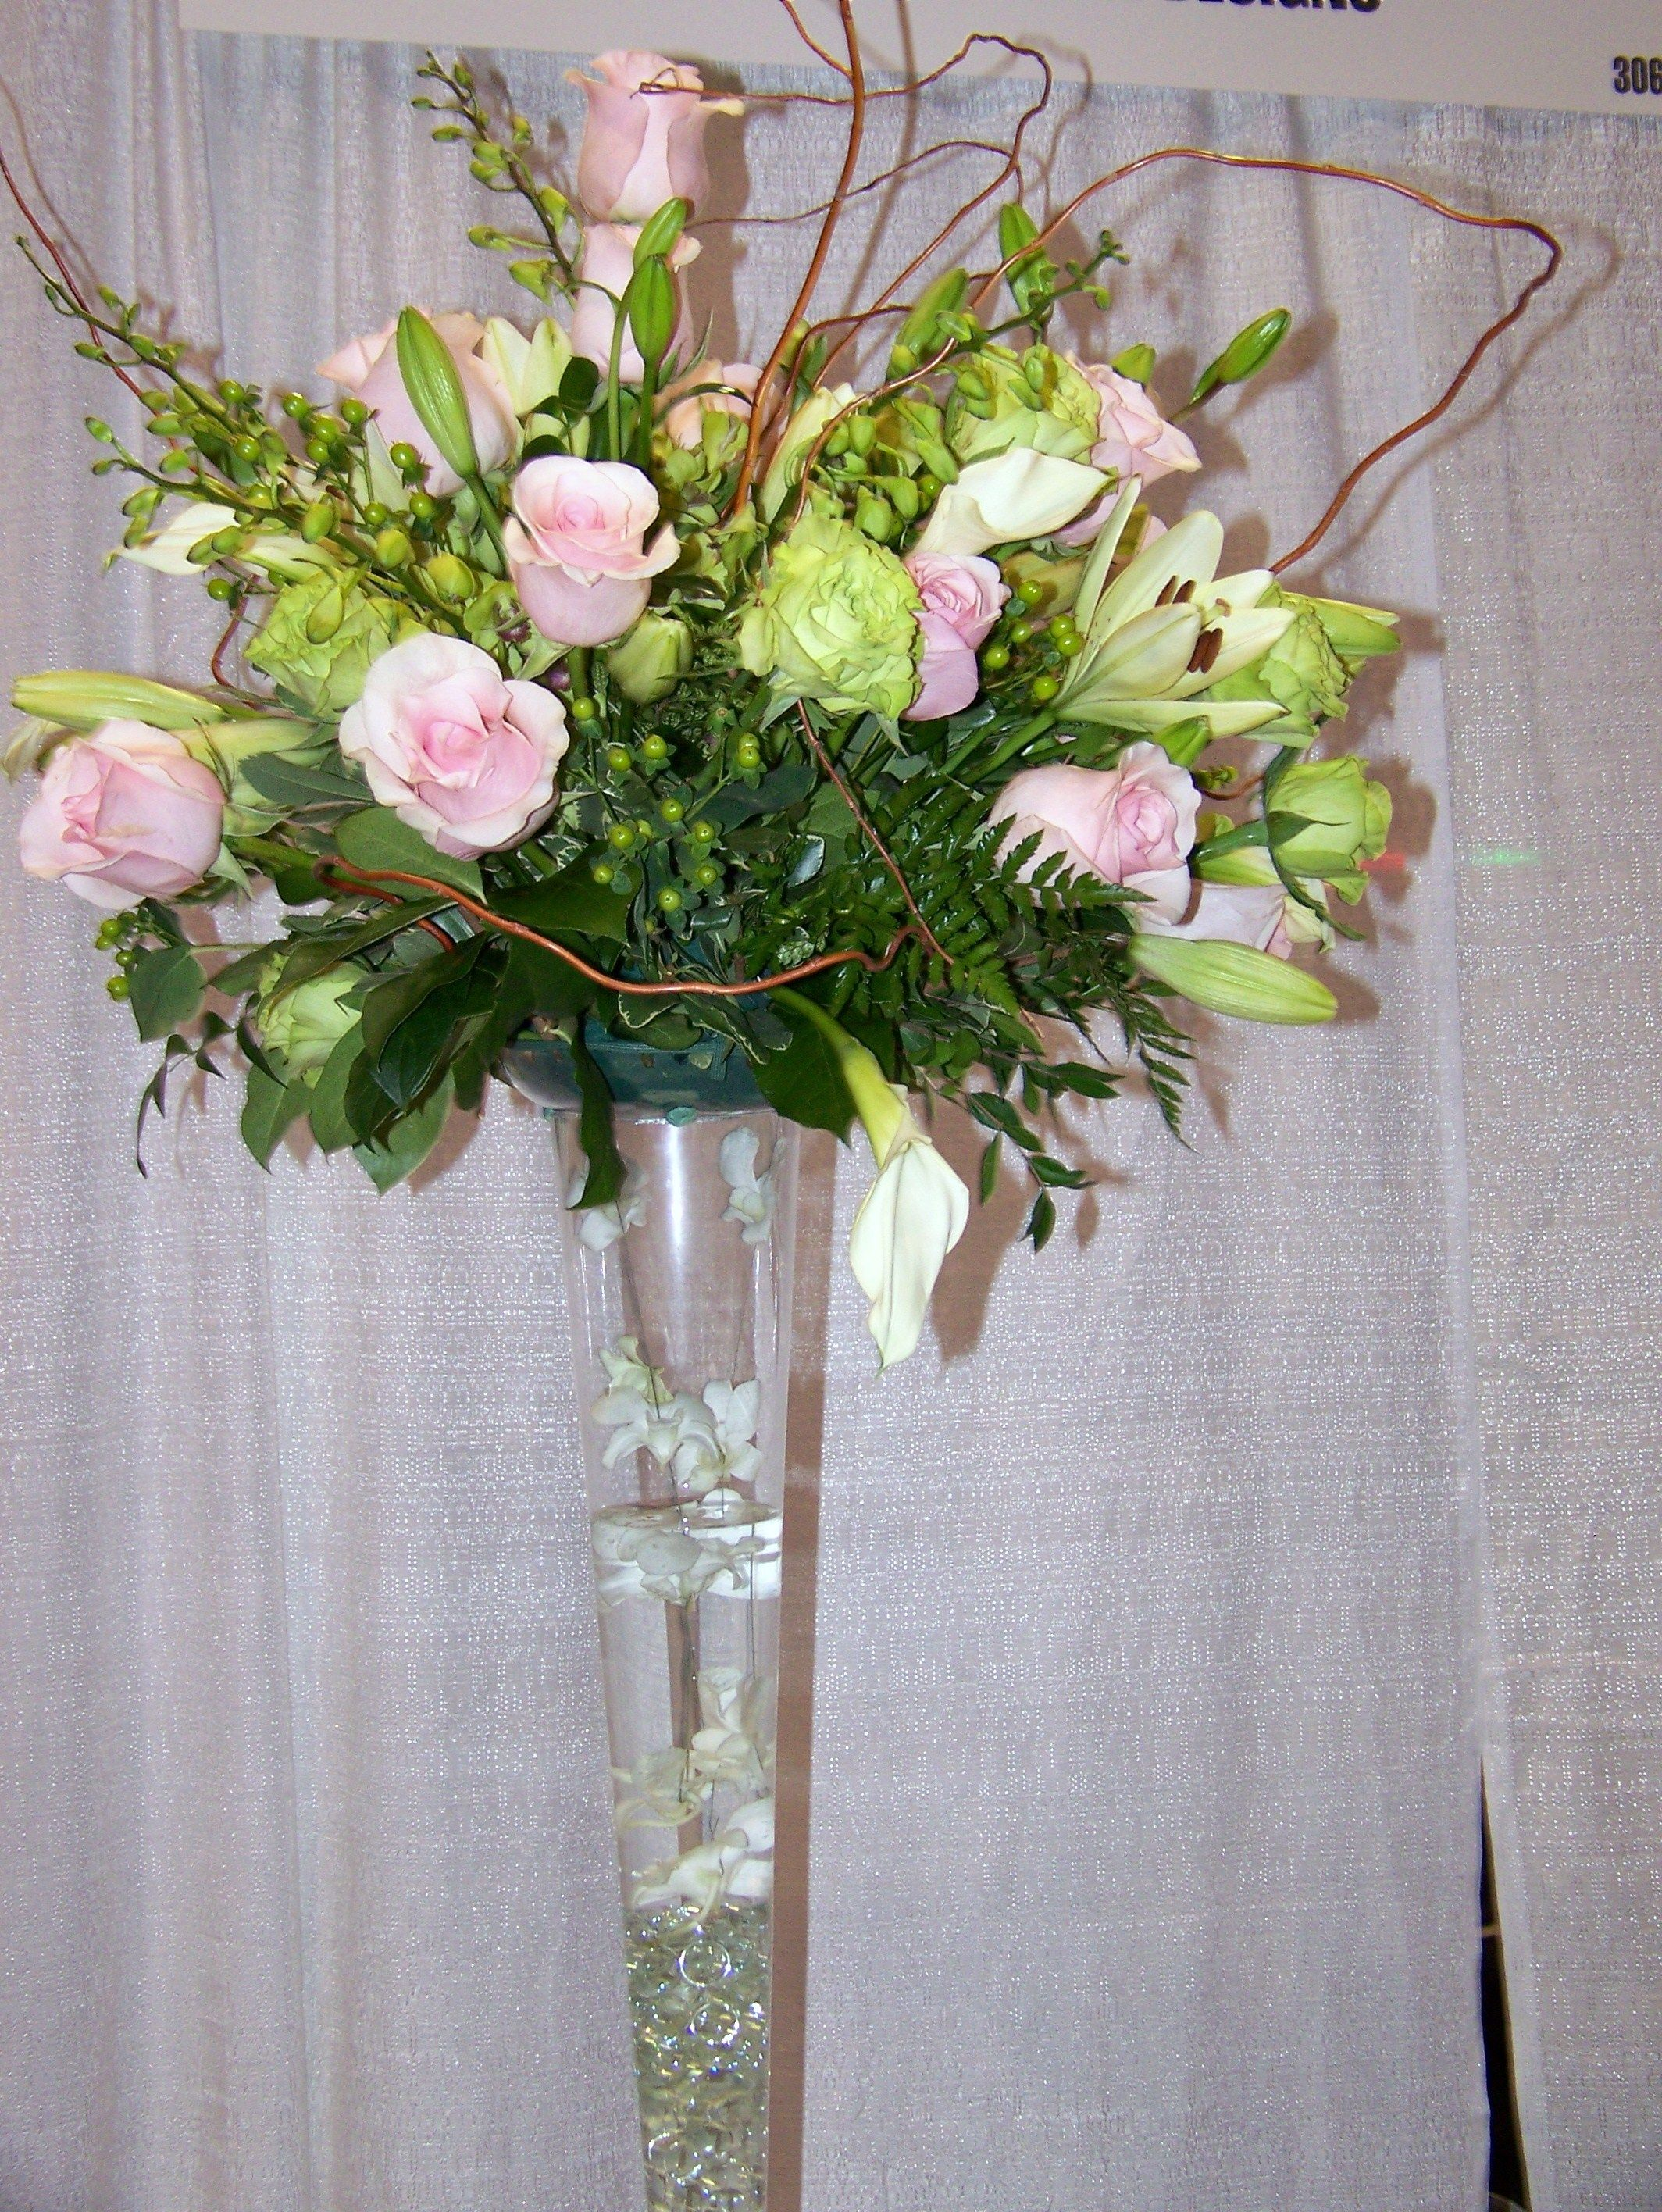 Home Decor, Wedding Flower Arrangements Tall Vases: Arranging Flower for Tall  Vases